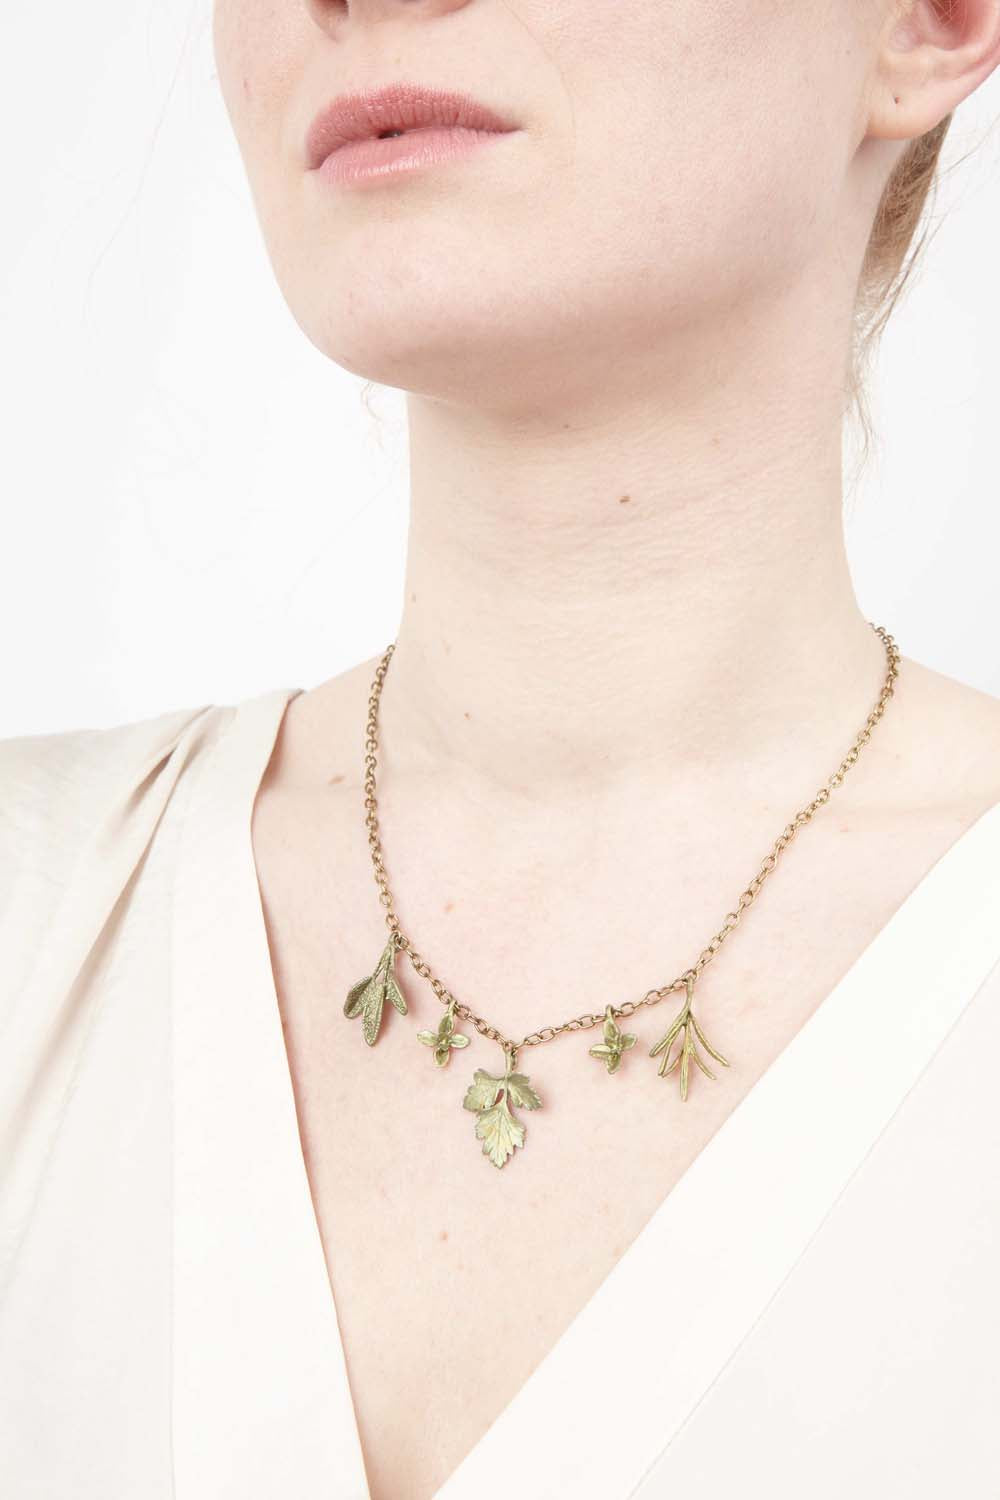 Petite Herb Charm Necklace